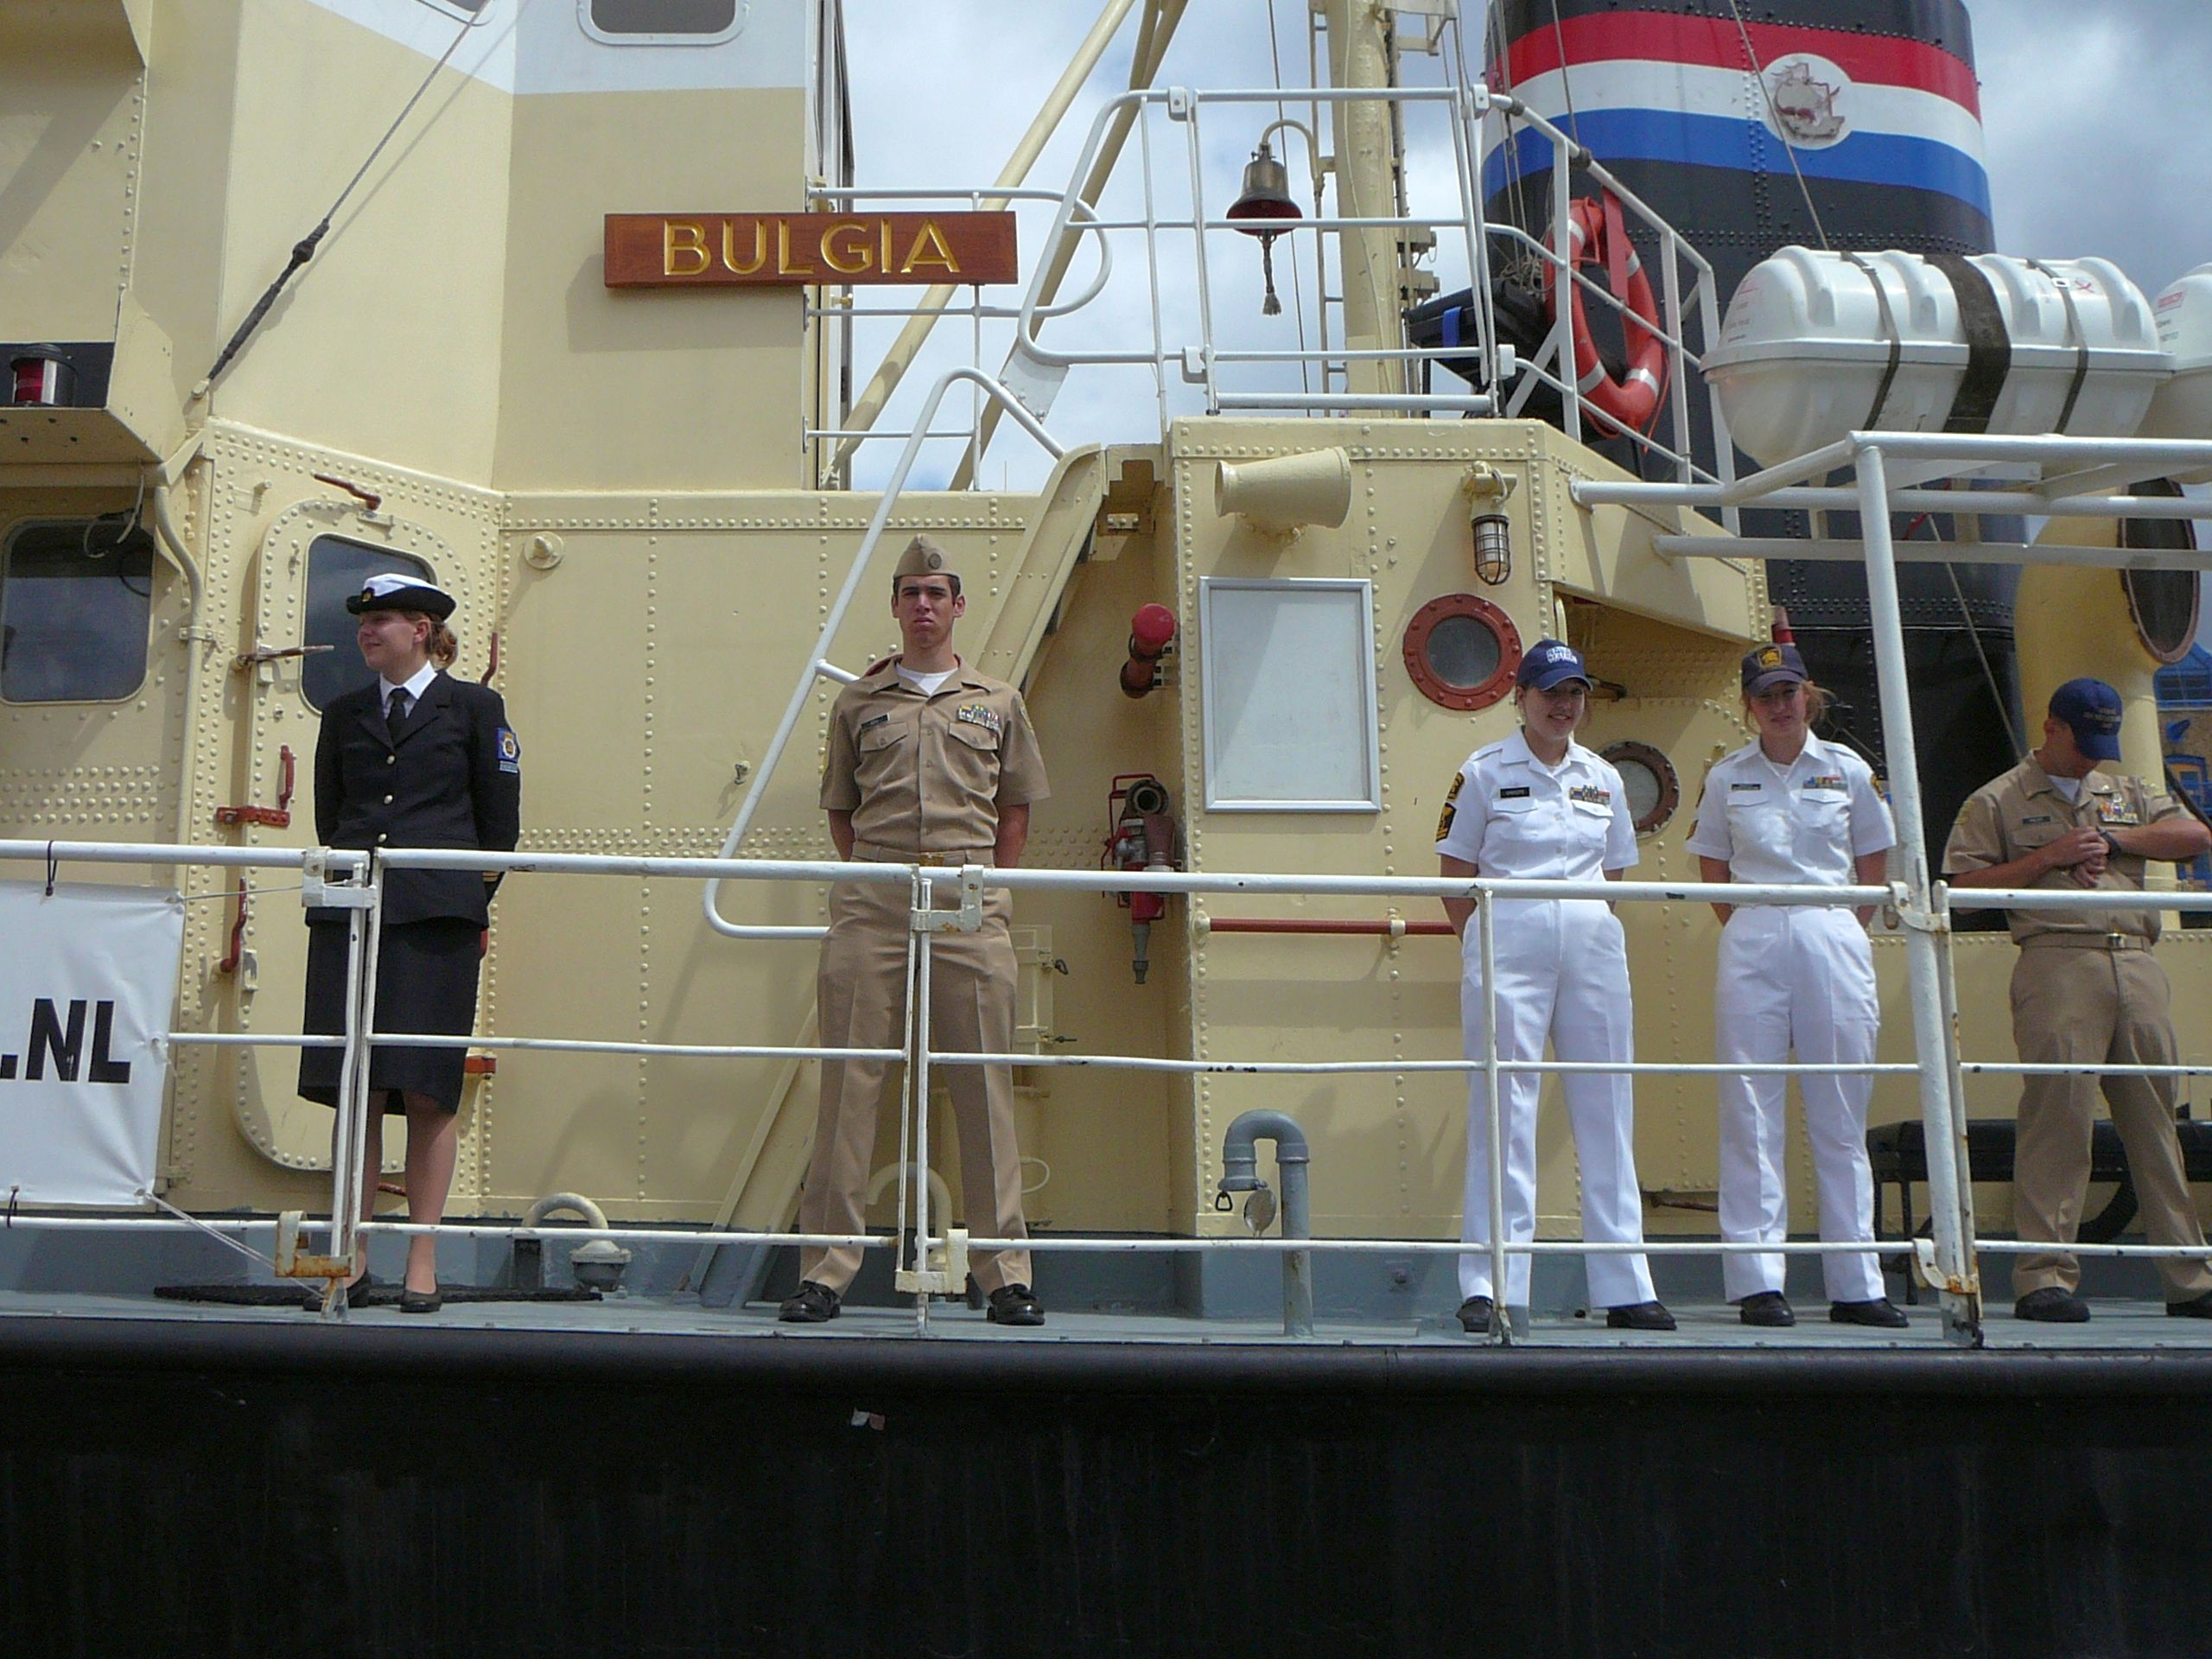 American Seacadets on board the Bulgia of Alkmaar